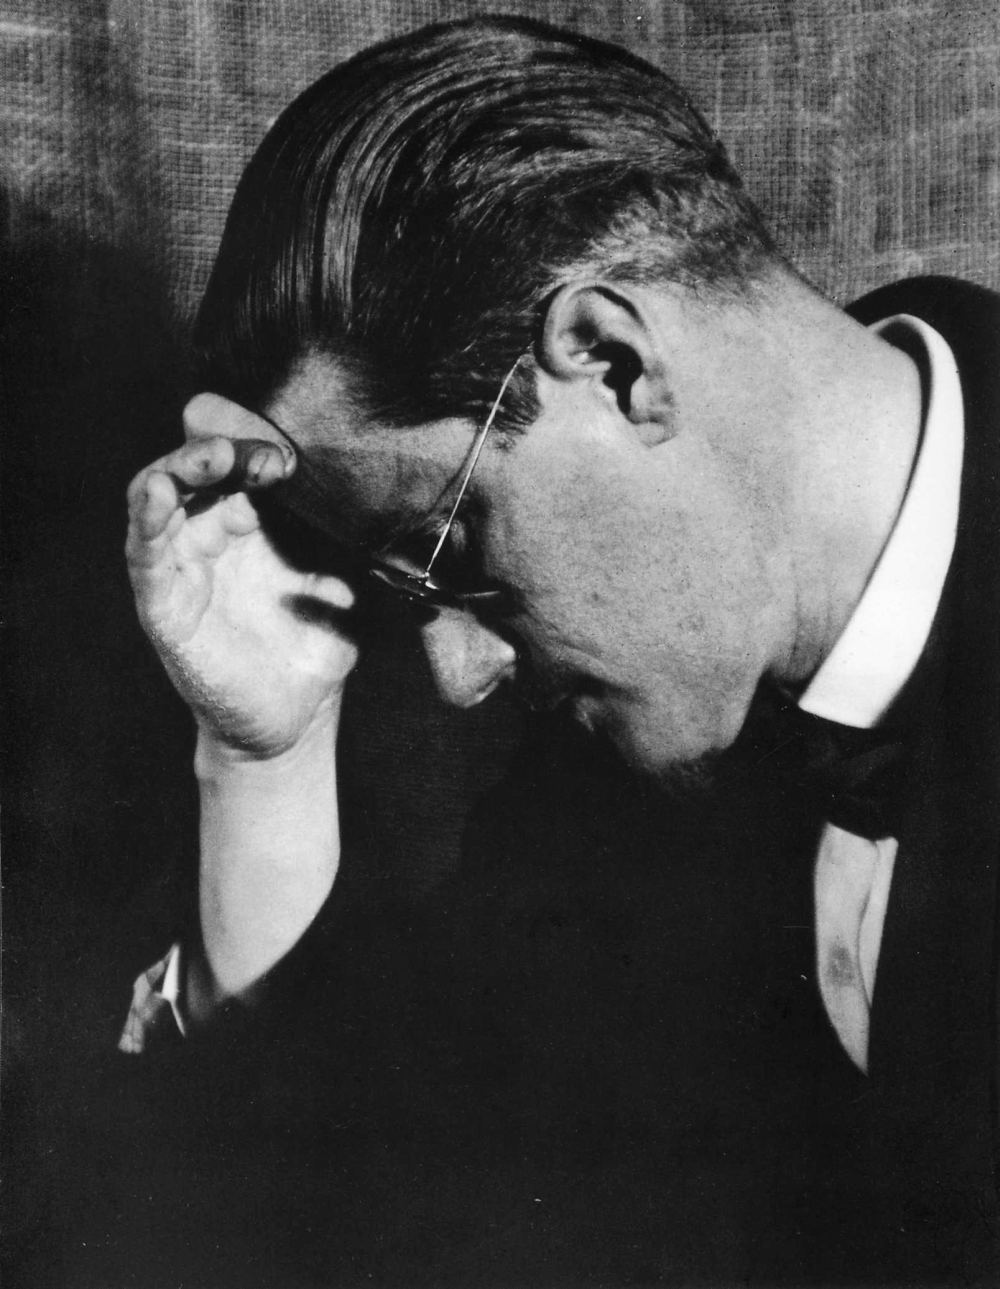 onlyoldphotography man ray james joyce 1922 happy birthday james joyce